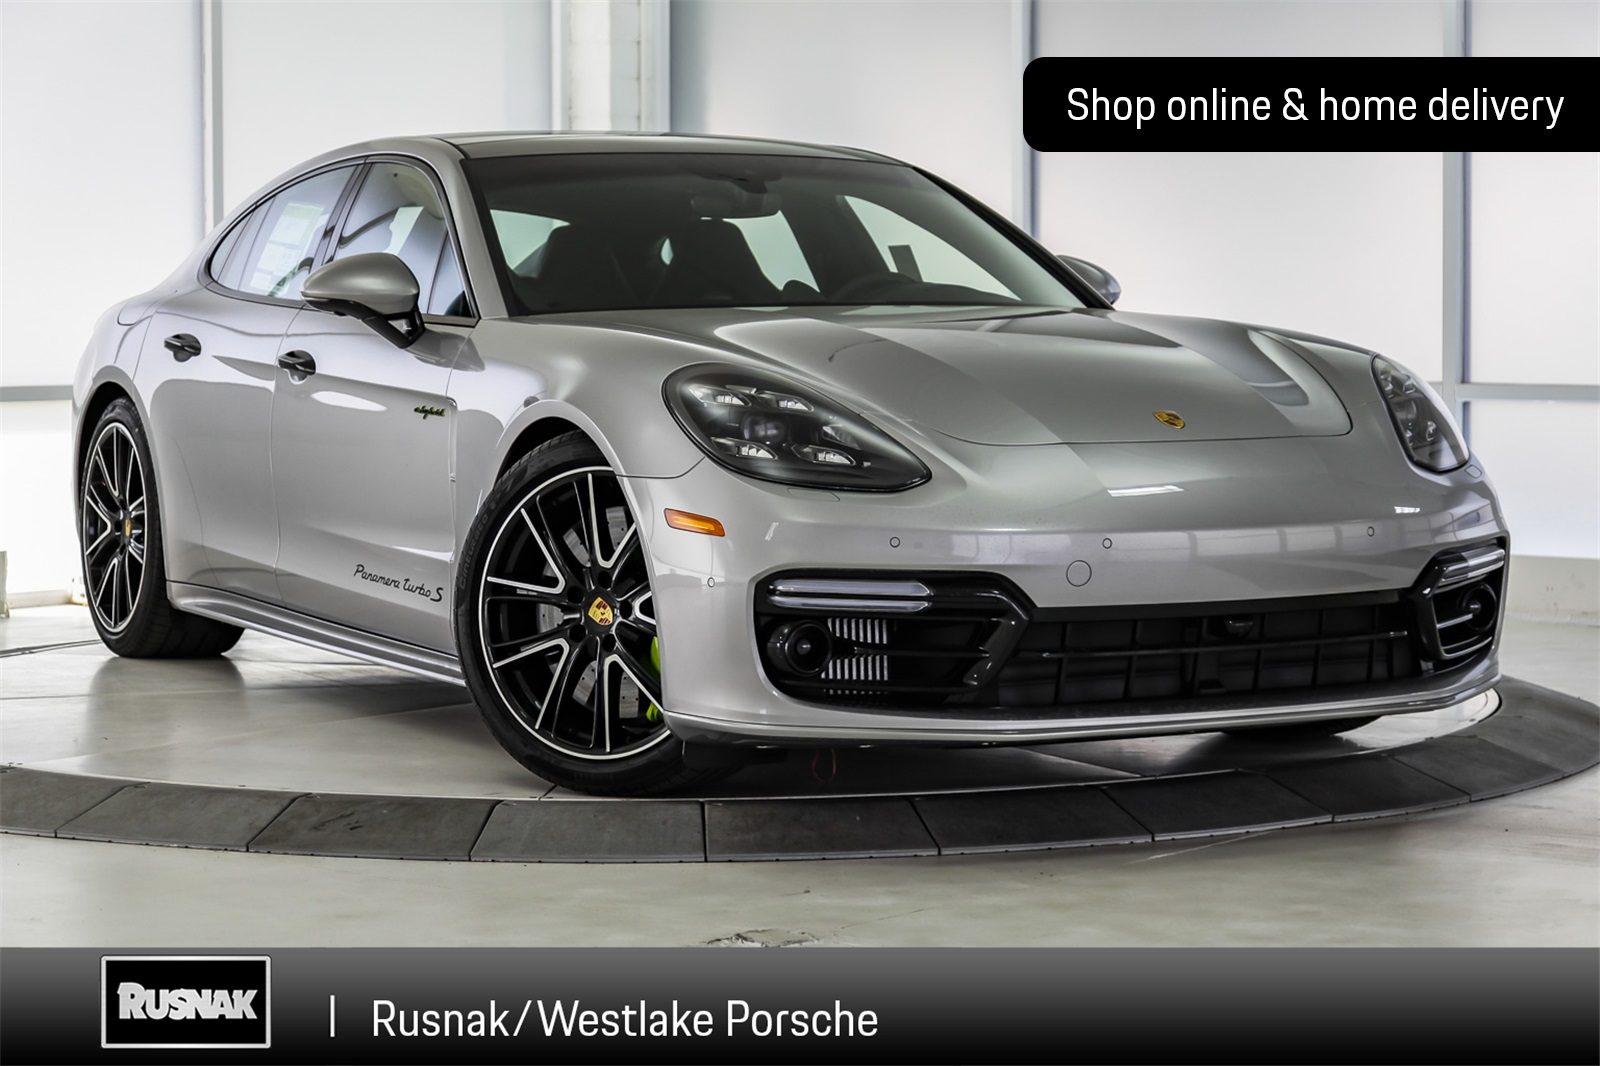 New 2020 Porsche Panamera E Hybrid Turbo S 4d Hatchback In Thousand Oaks 23200616 Rusnak Westlake Porsche